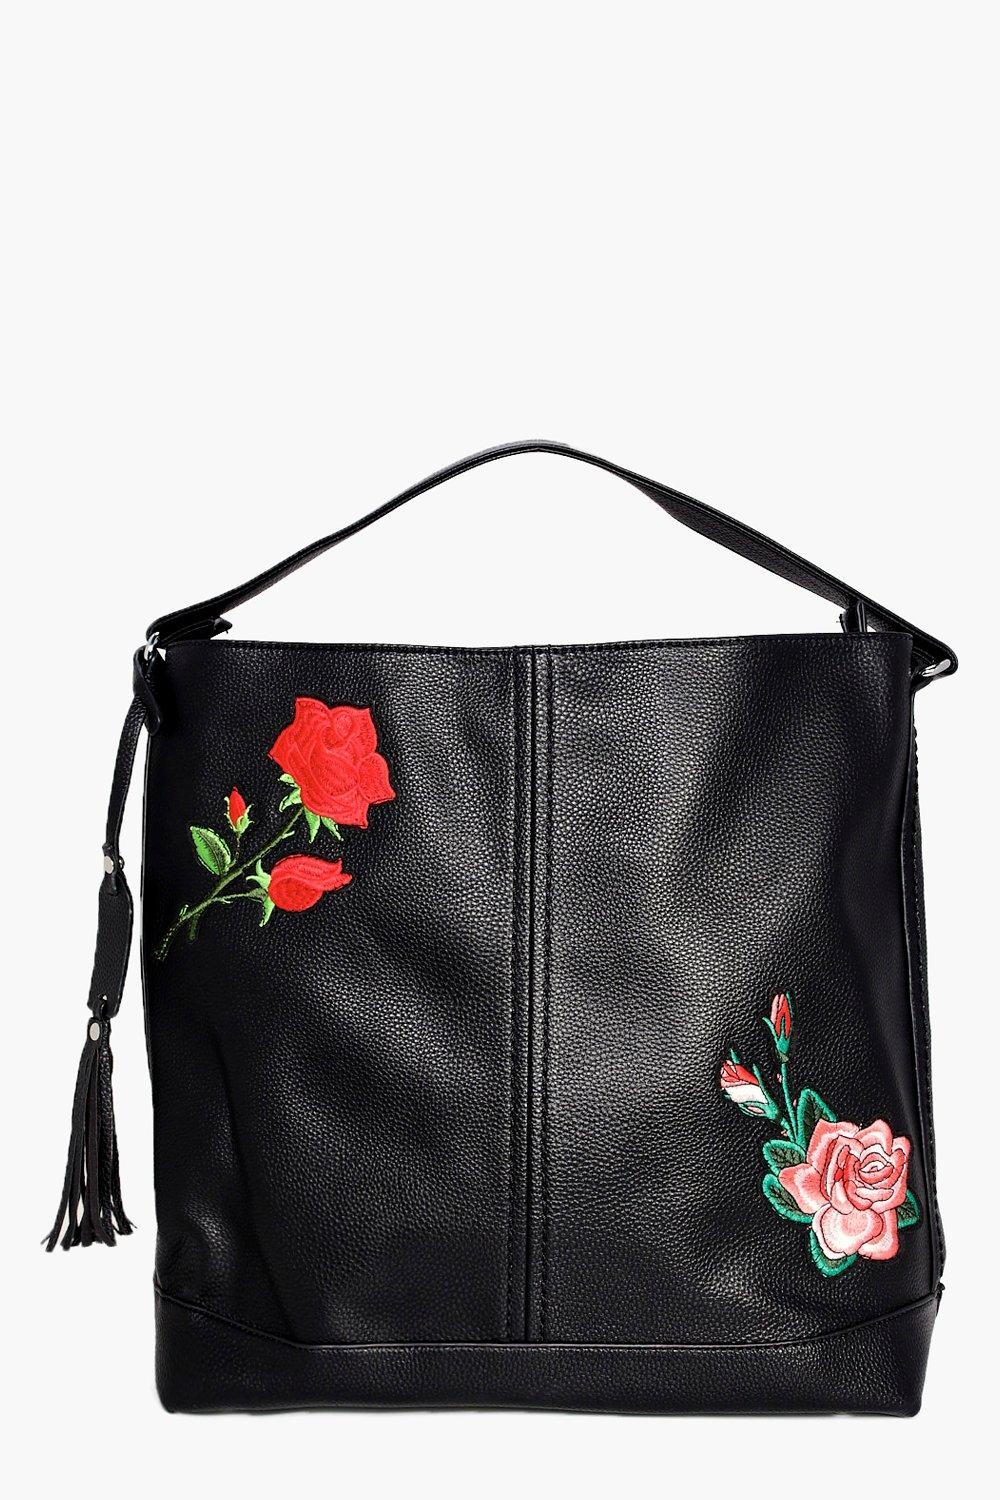 Embroidered Hobo Shoulder Bag - black - Alyssa Emb